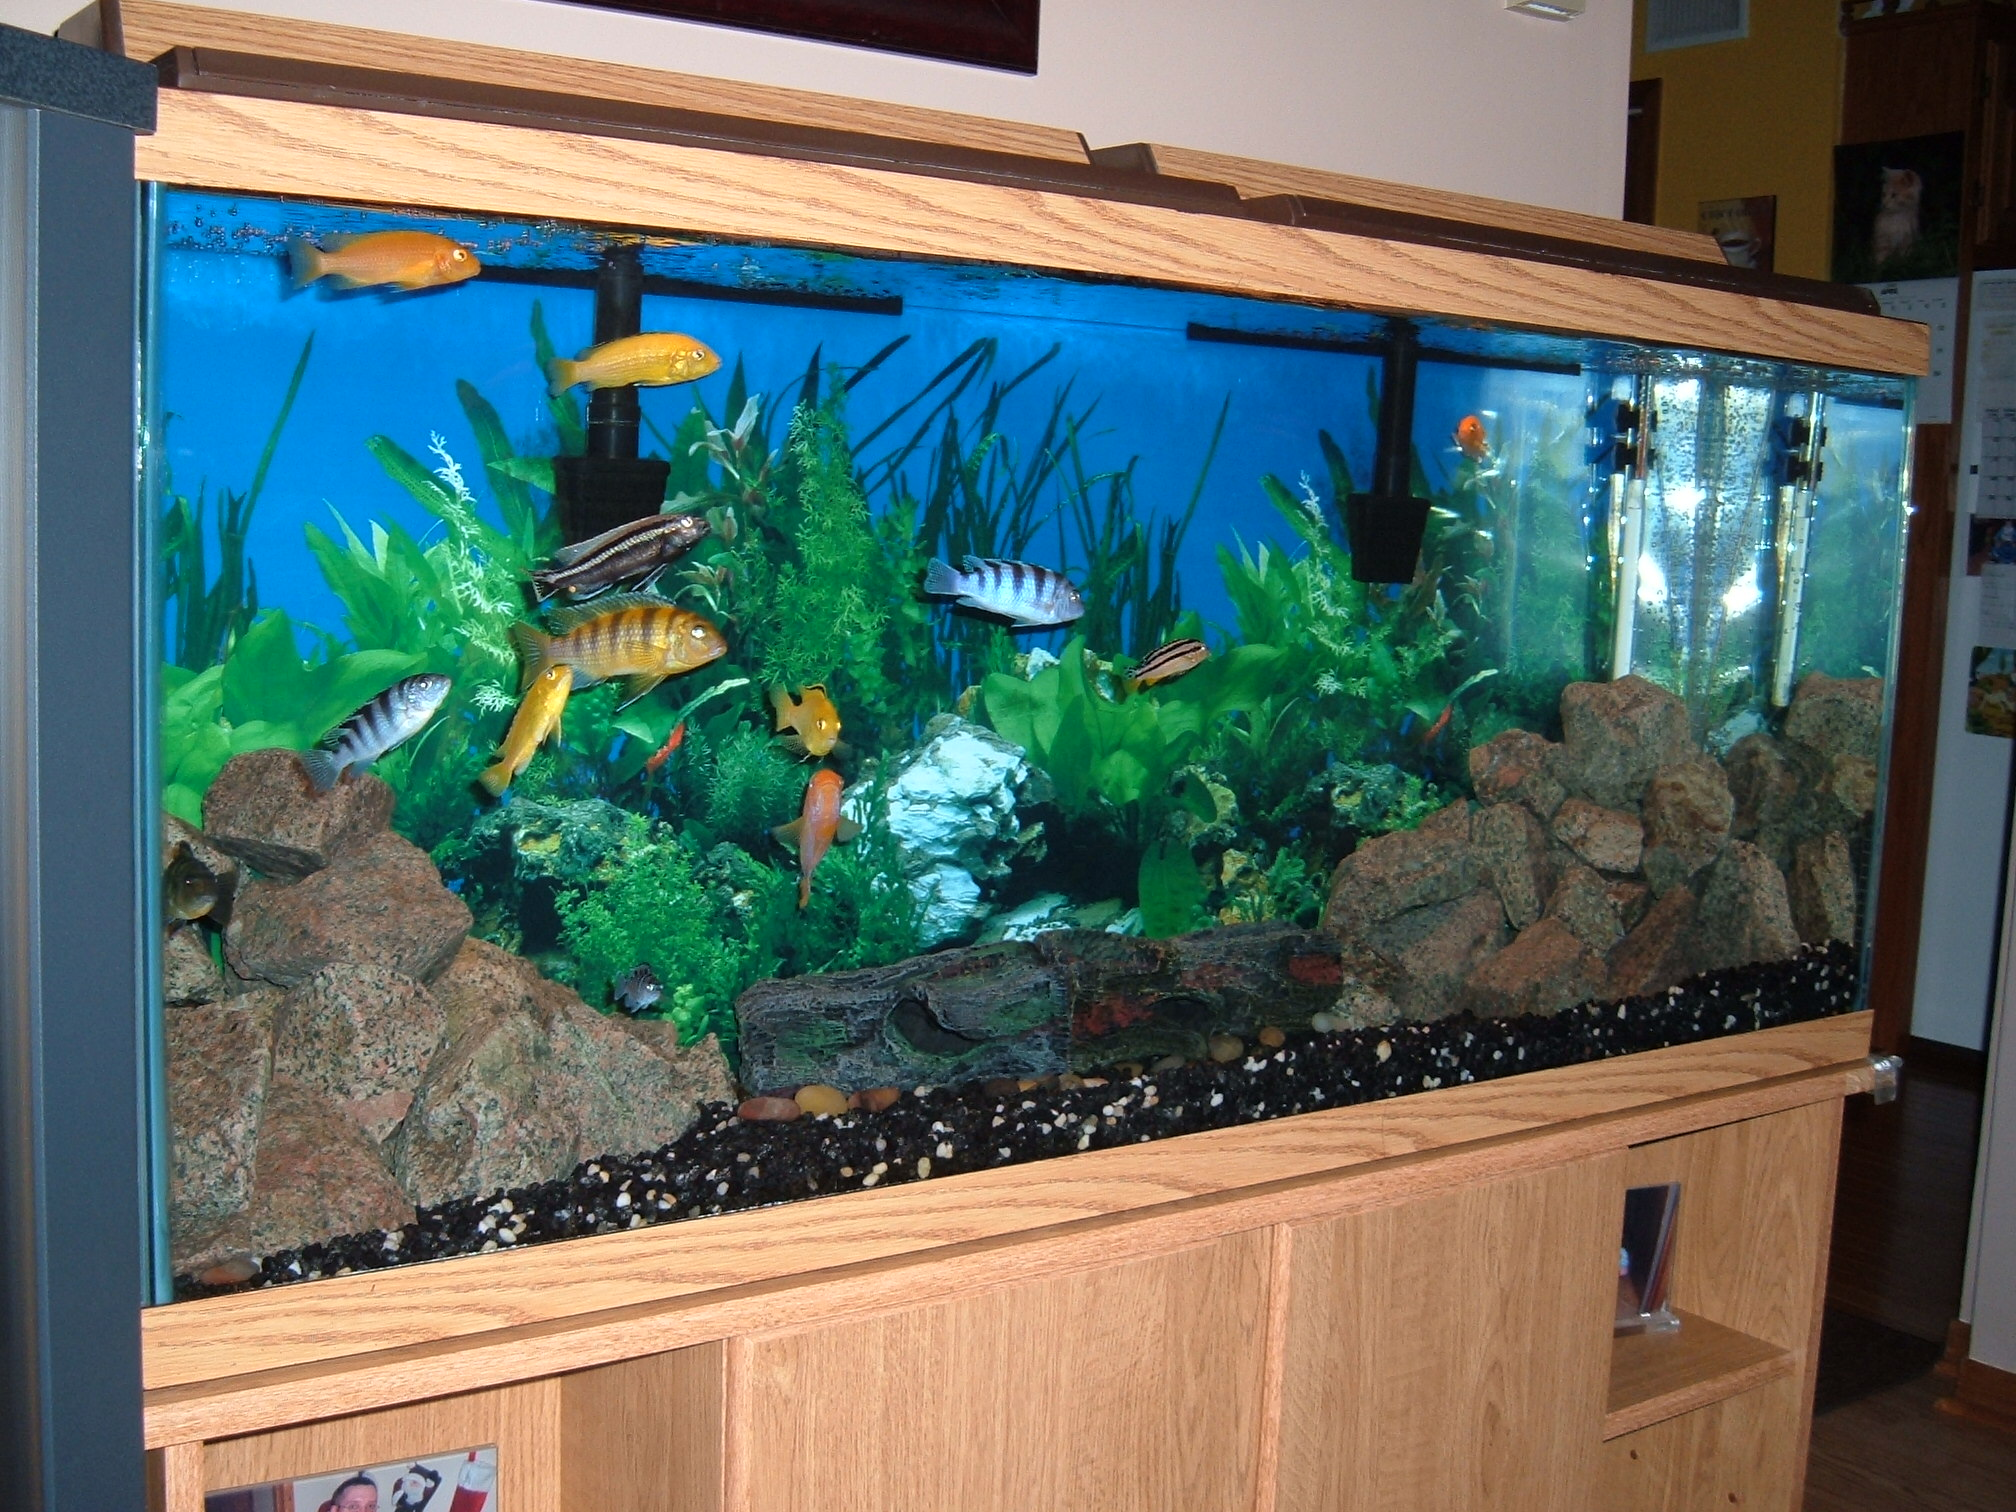 55 gallon fish tank jewel cichlid tank for 55 gallon fish tank for sale